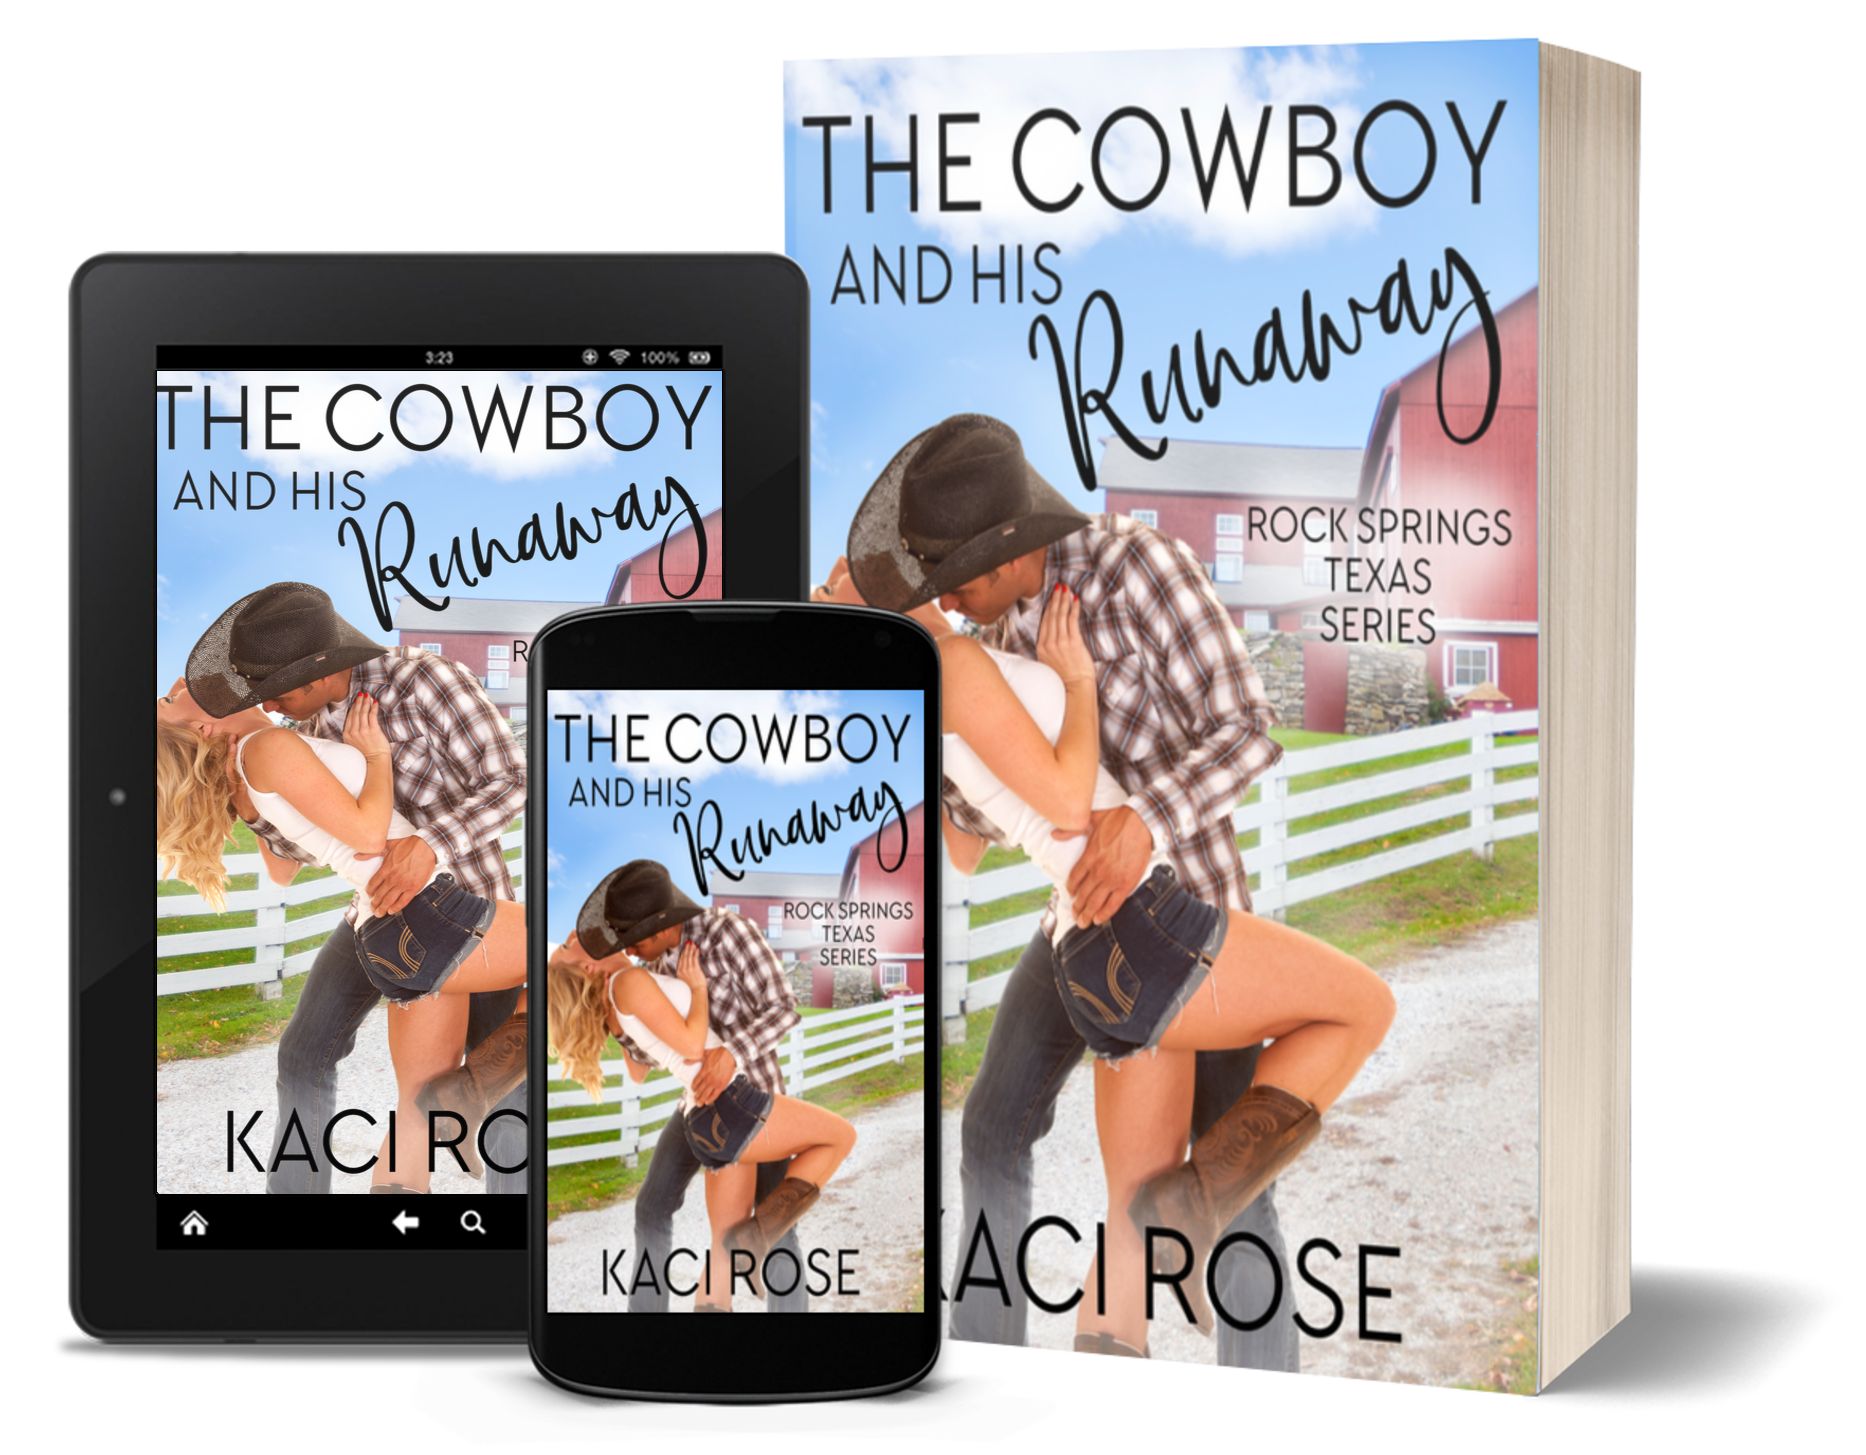 The Cowboy and His Runaway - 3D covers